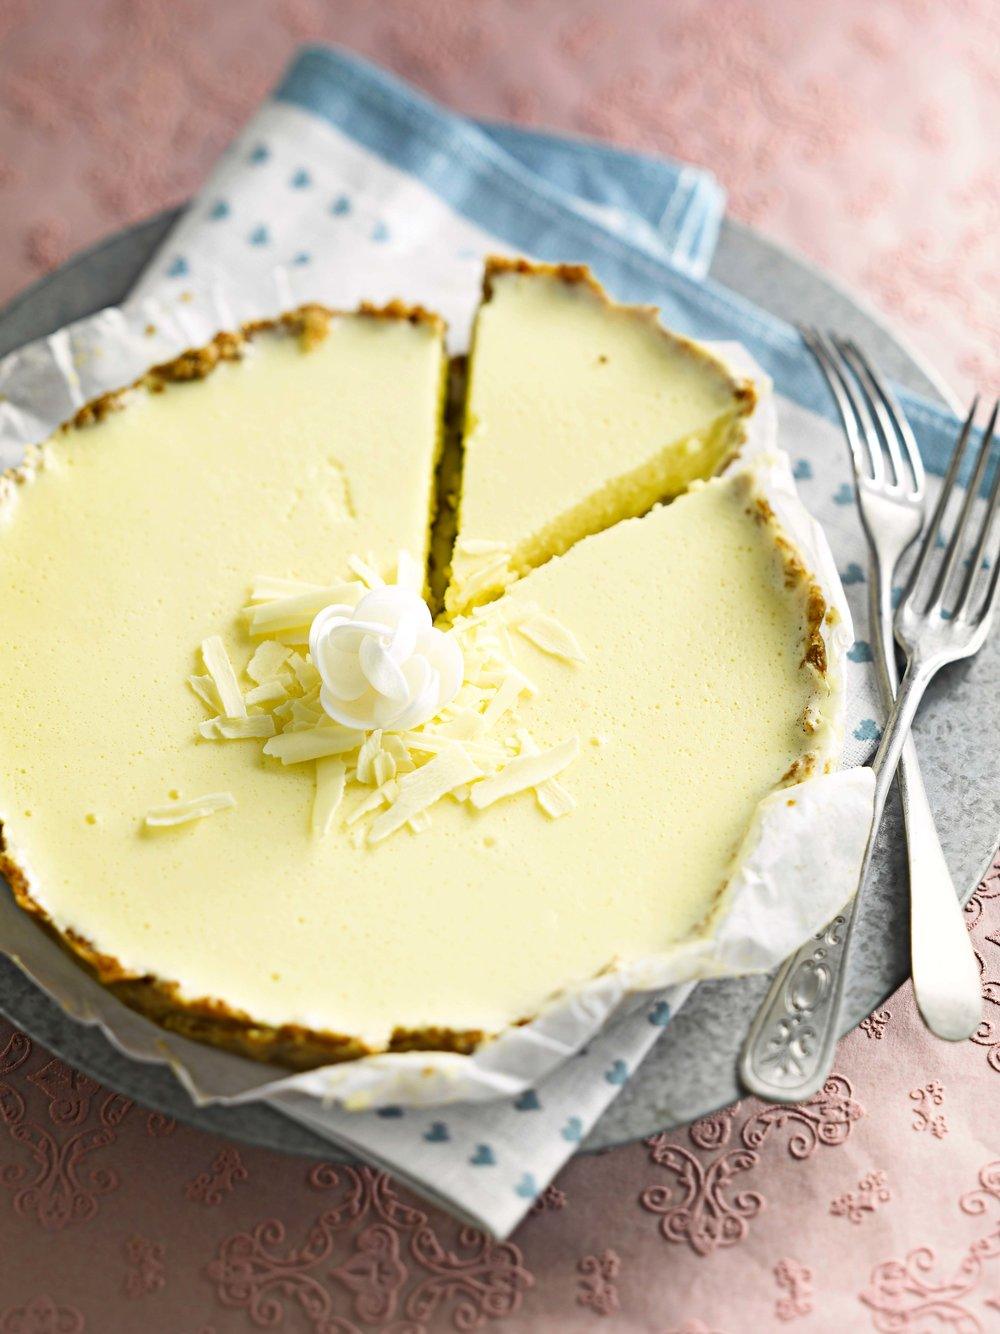 A slice of white chocolate cheesecake, a perfect springtime treat, from a recipe in the May 2018 issue of LandScape